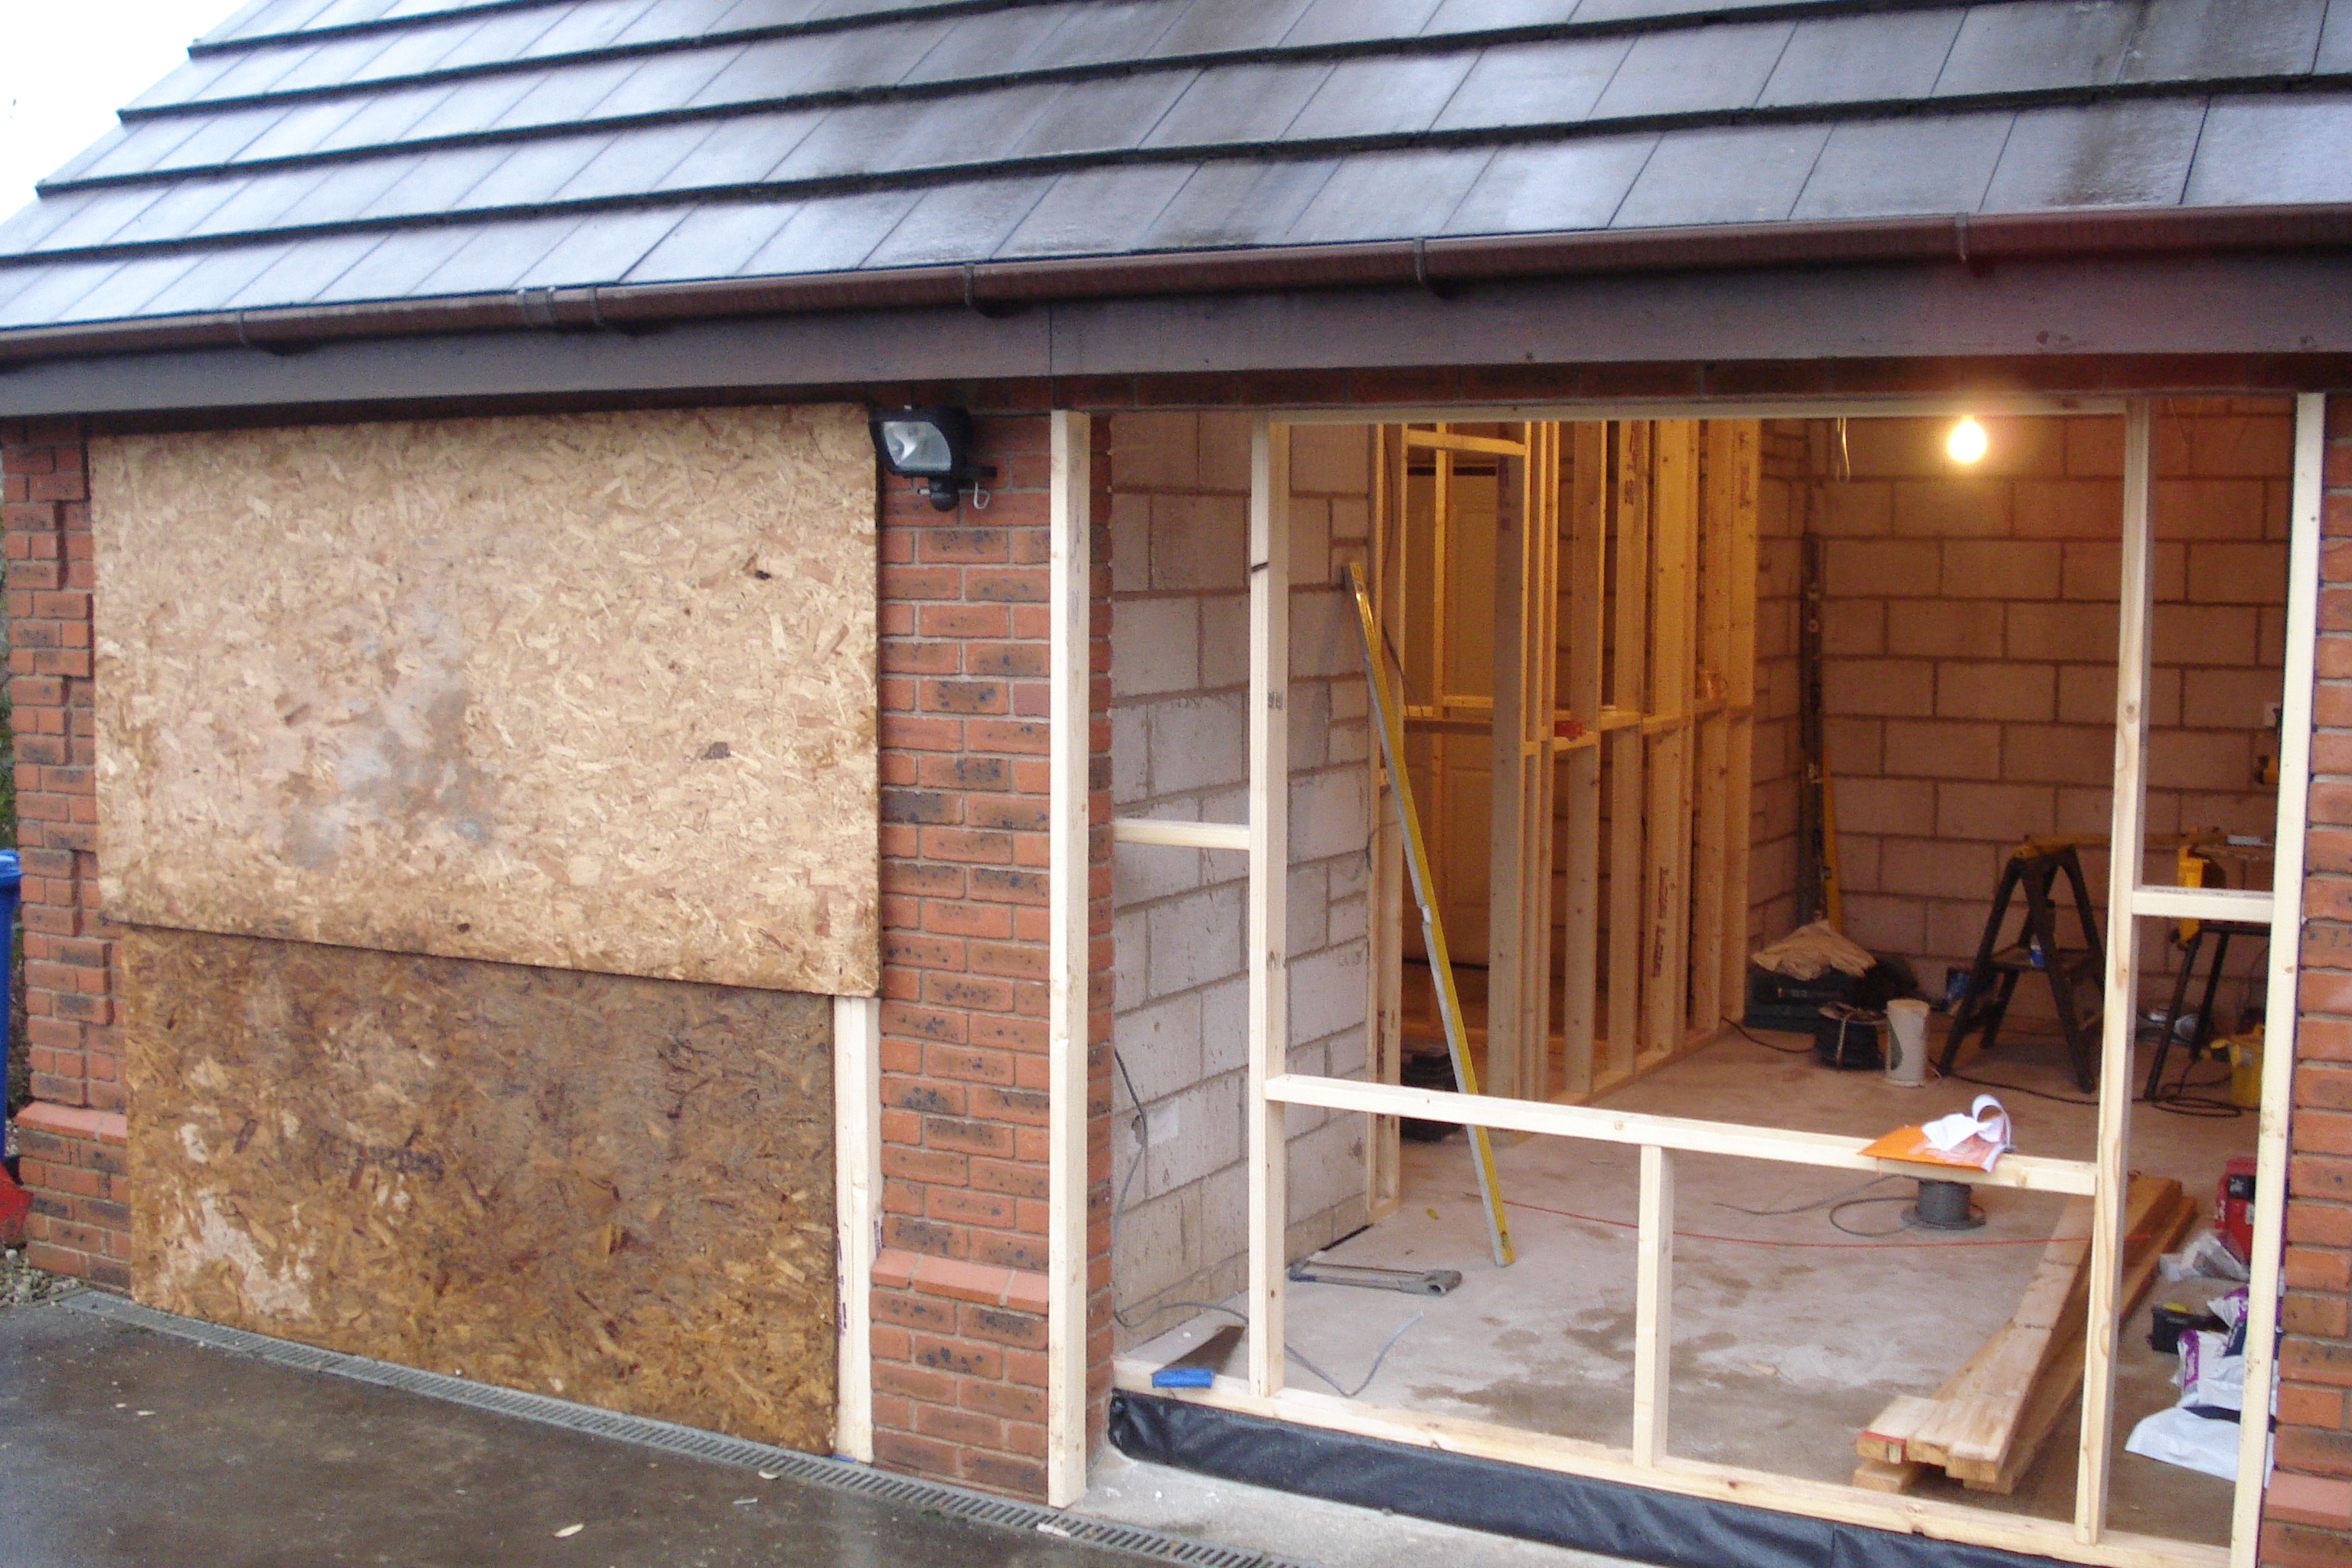 removal of garage doors prior to installation of windows and brickwork